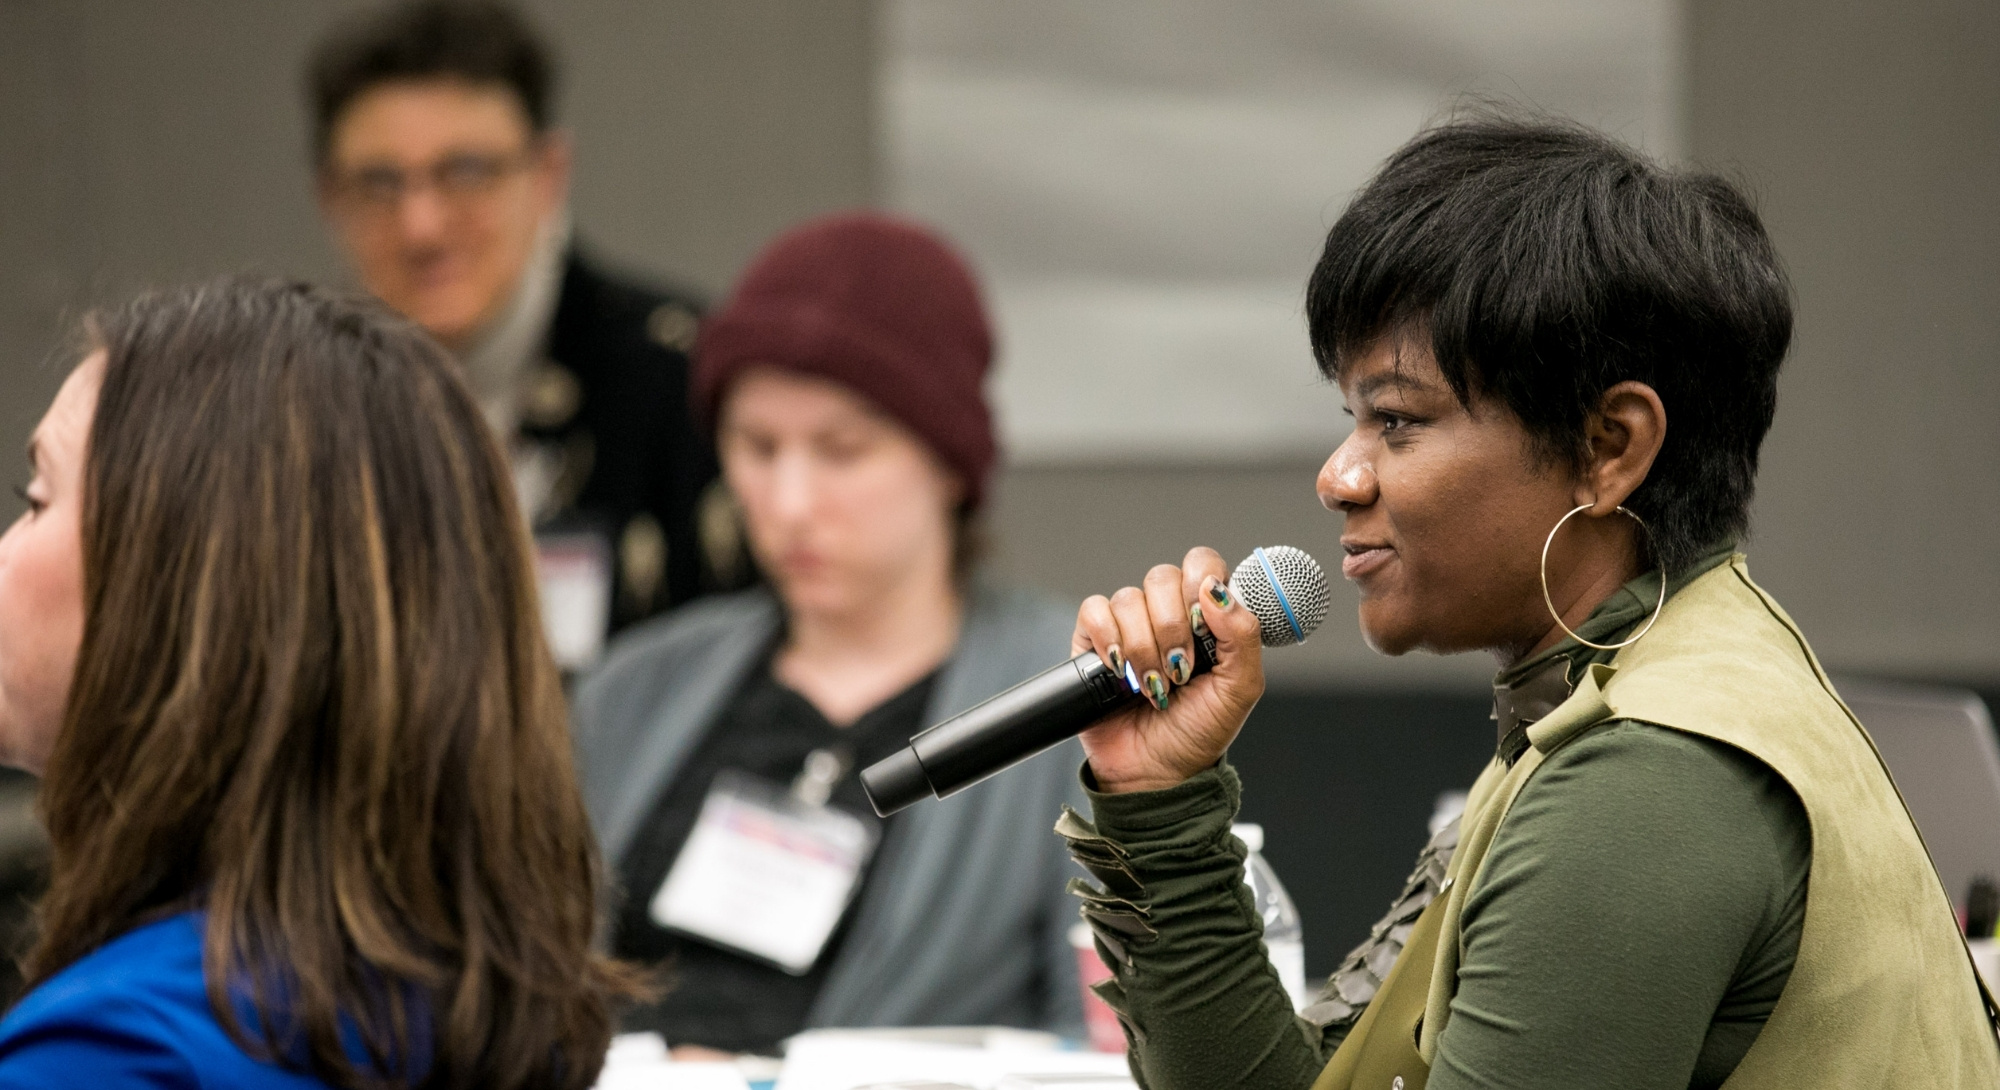 A woman with short black hair, dark-toned skin, and a green top addresses a conference room of people with a microphone.